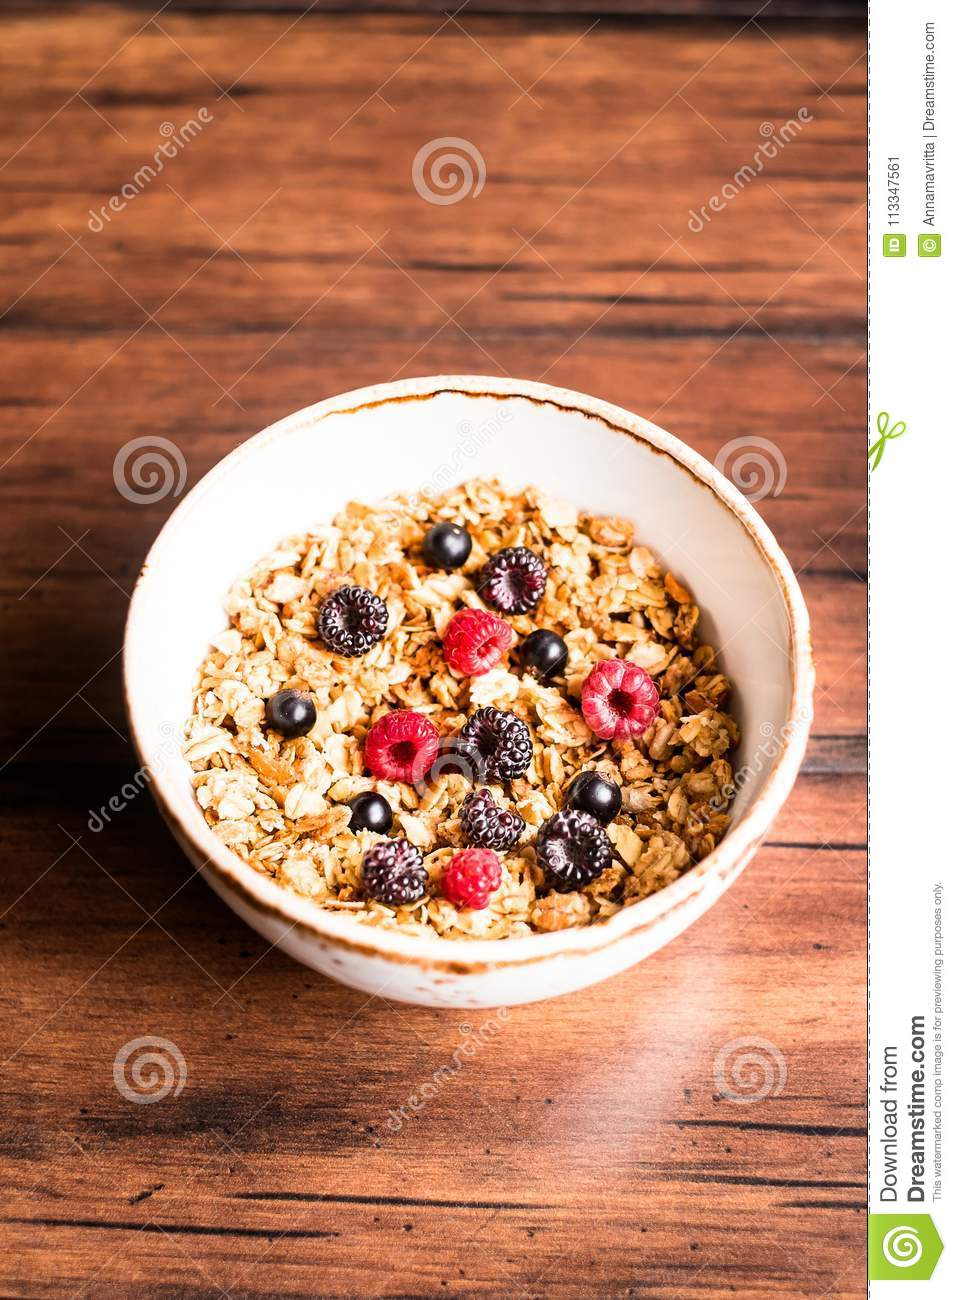 Breakfast super bowl of homemade granola or muesli with oat flakes, black currant, black raspberry and peanuts on a wooden table,